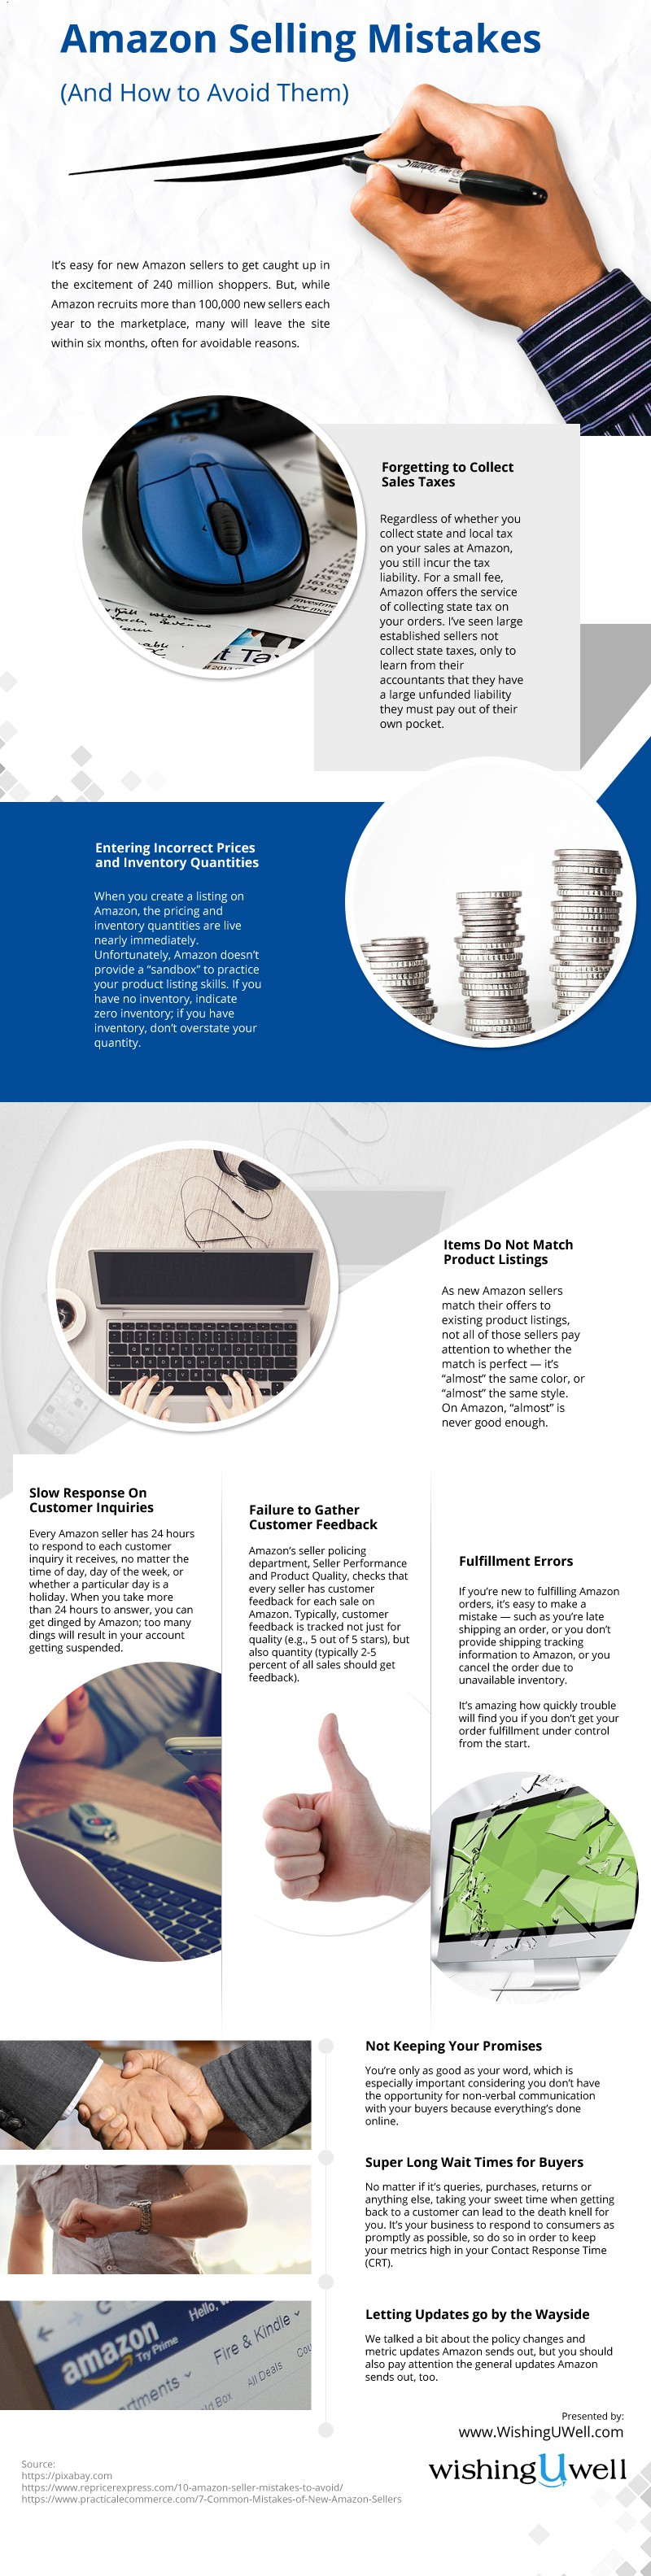 Amazon-Selling-Mistakes Infographic